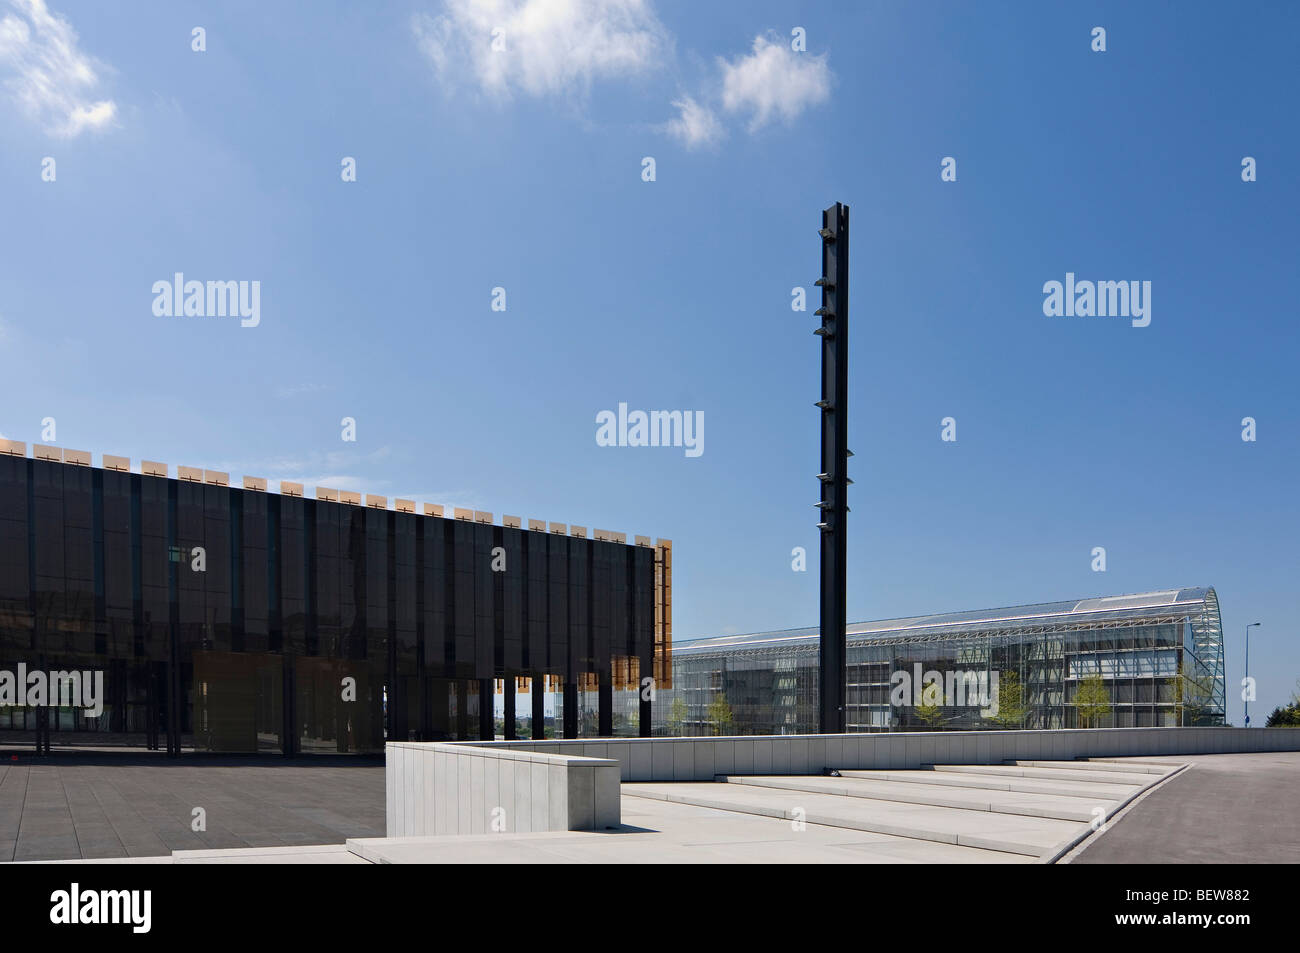 Square with stele in front of the European Court of Justice at the Kirchberg European Investment Bank Building Luxembourg - Stock Image